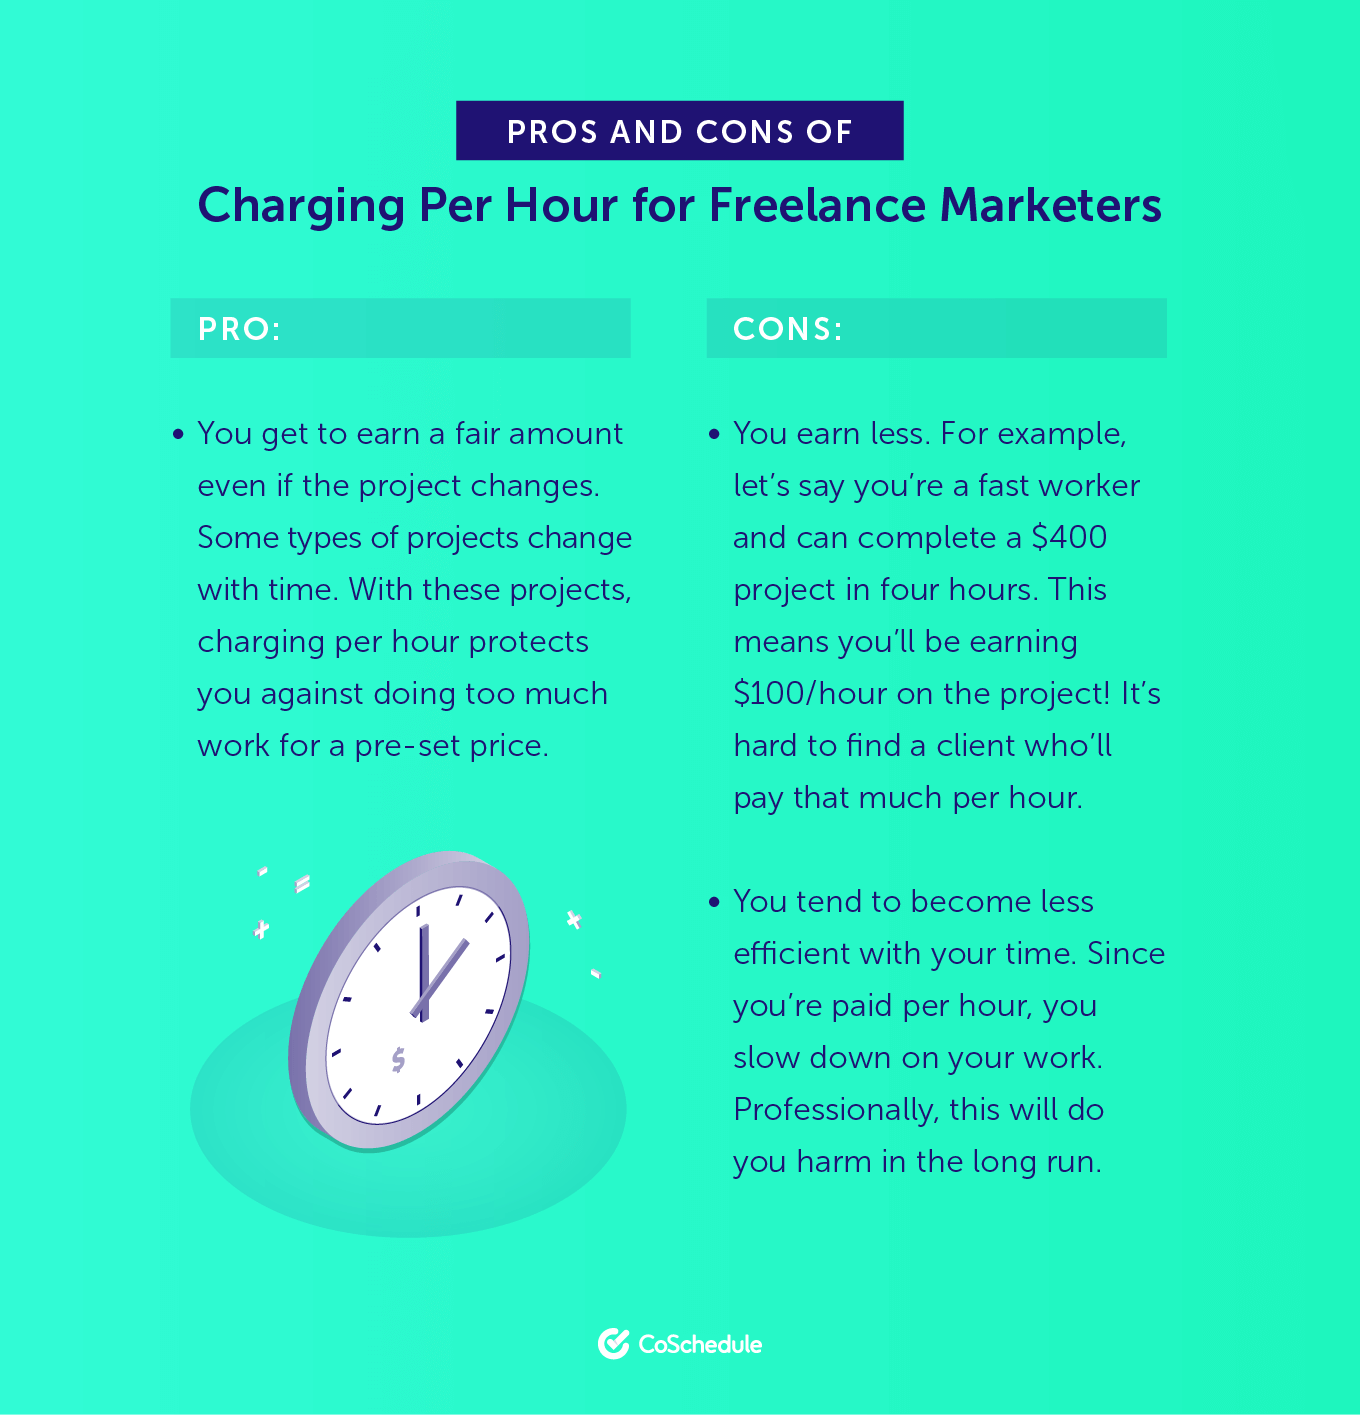 Pros and Cons of Charging Per Hour for Freelance Marketers